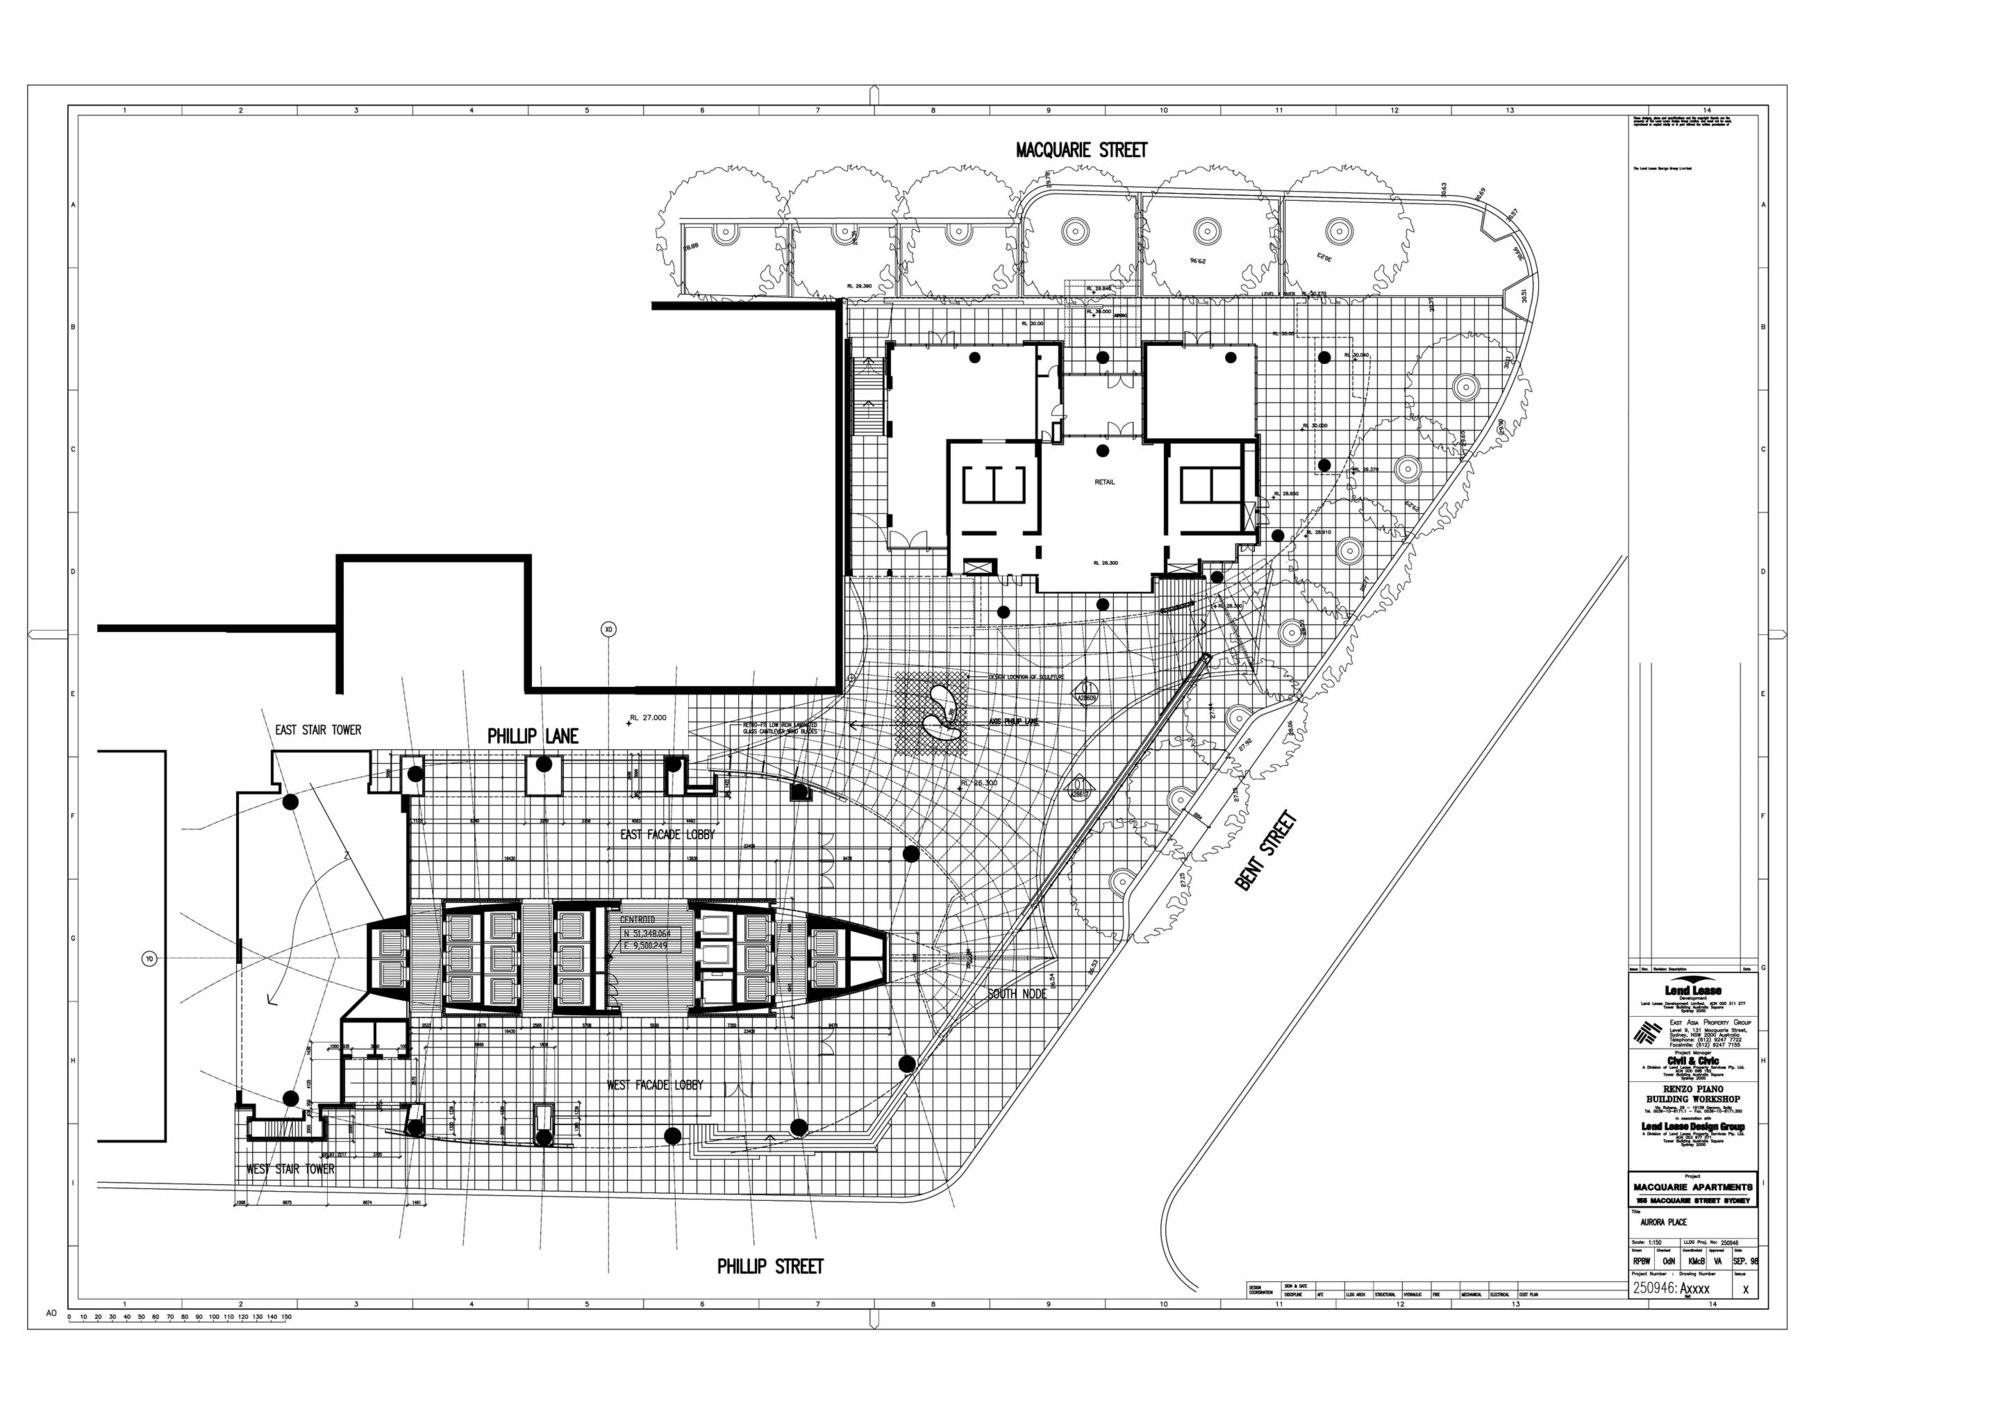 Residential Building Ground Floor Plan. Gallery of Aurora Place   Renzo Piano Building Workshop   17